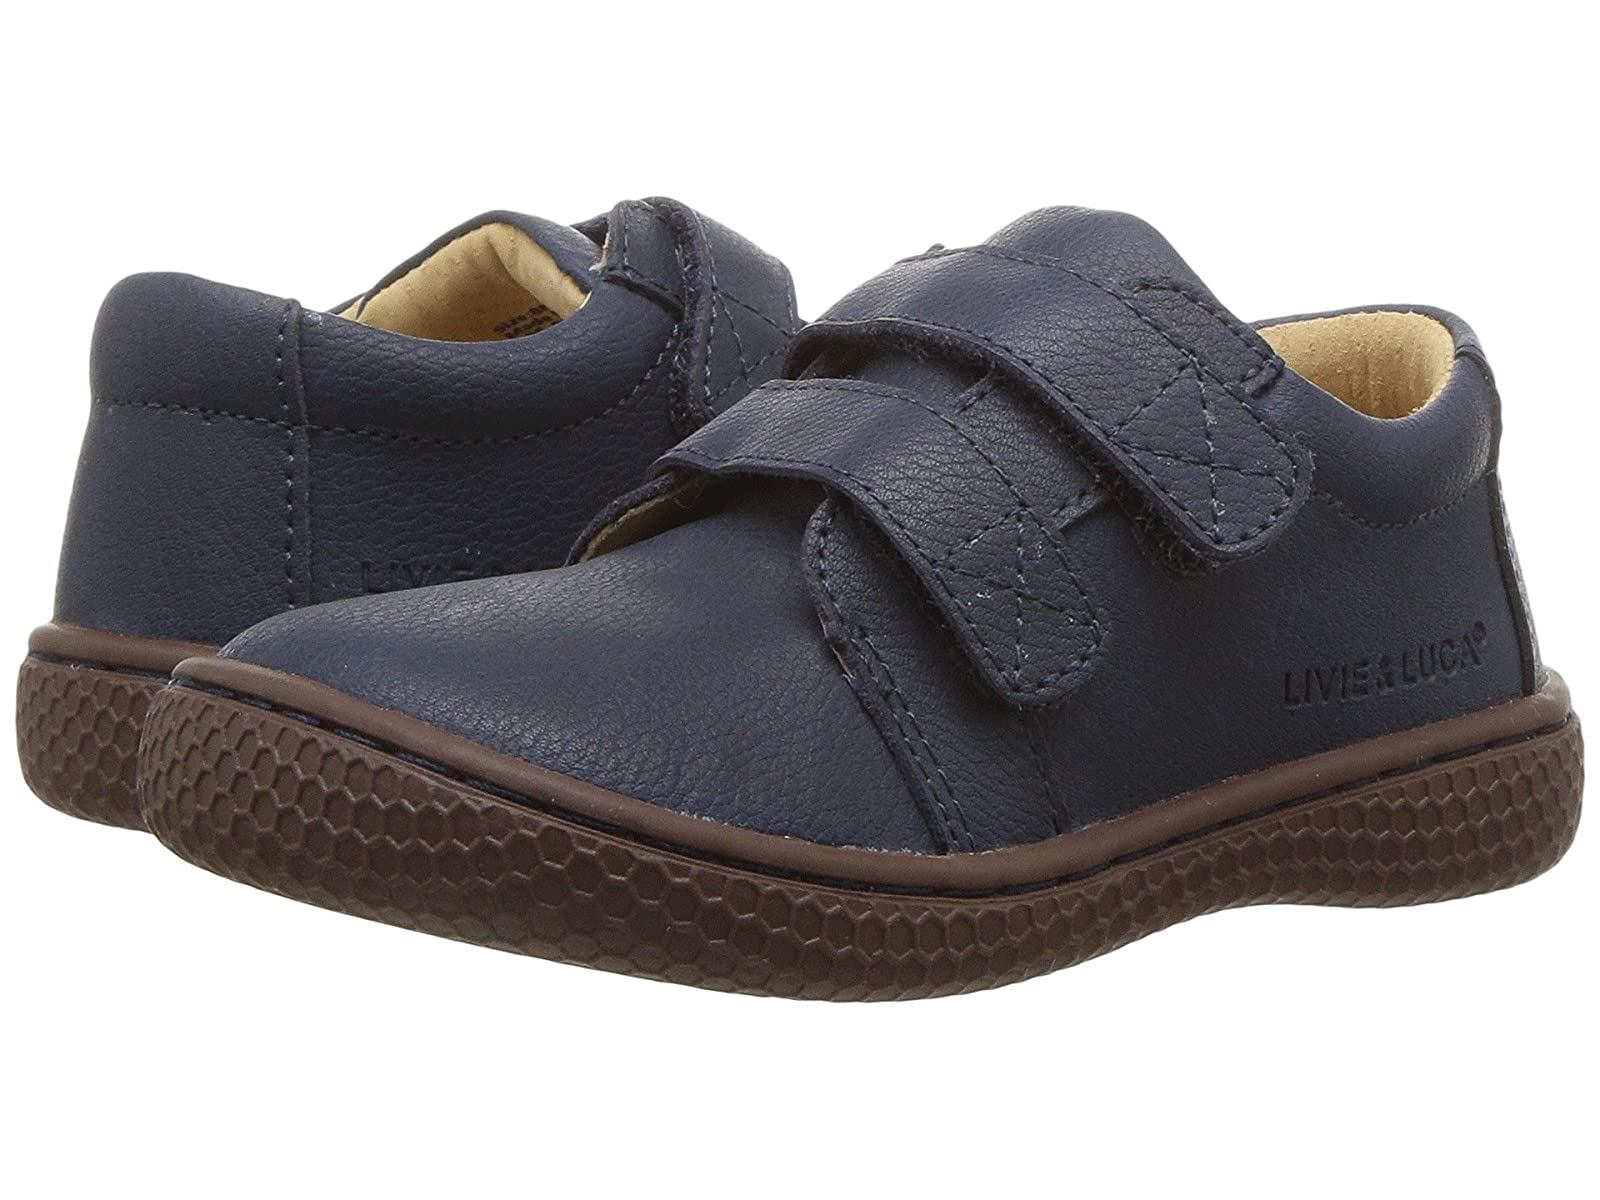 Livie & Luca Hayes (Toddler/Little Kid)Atmospheric grades have affordable shoes